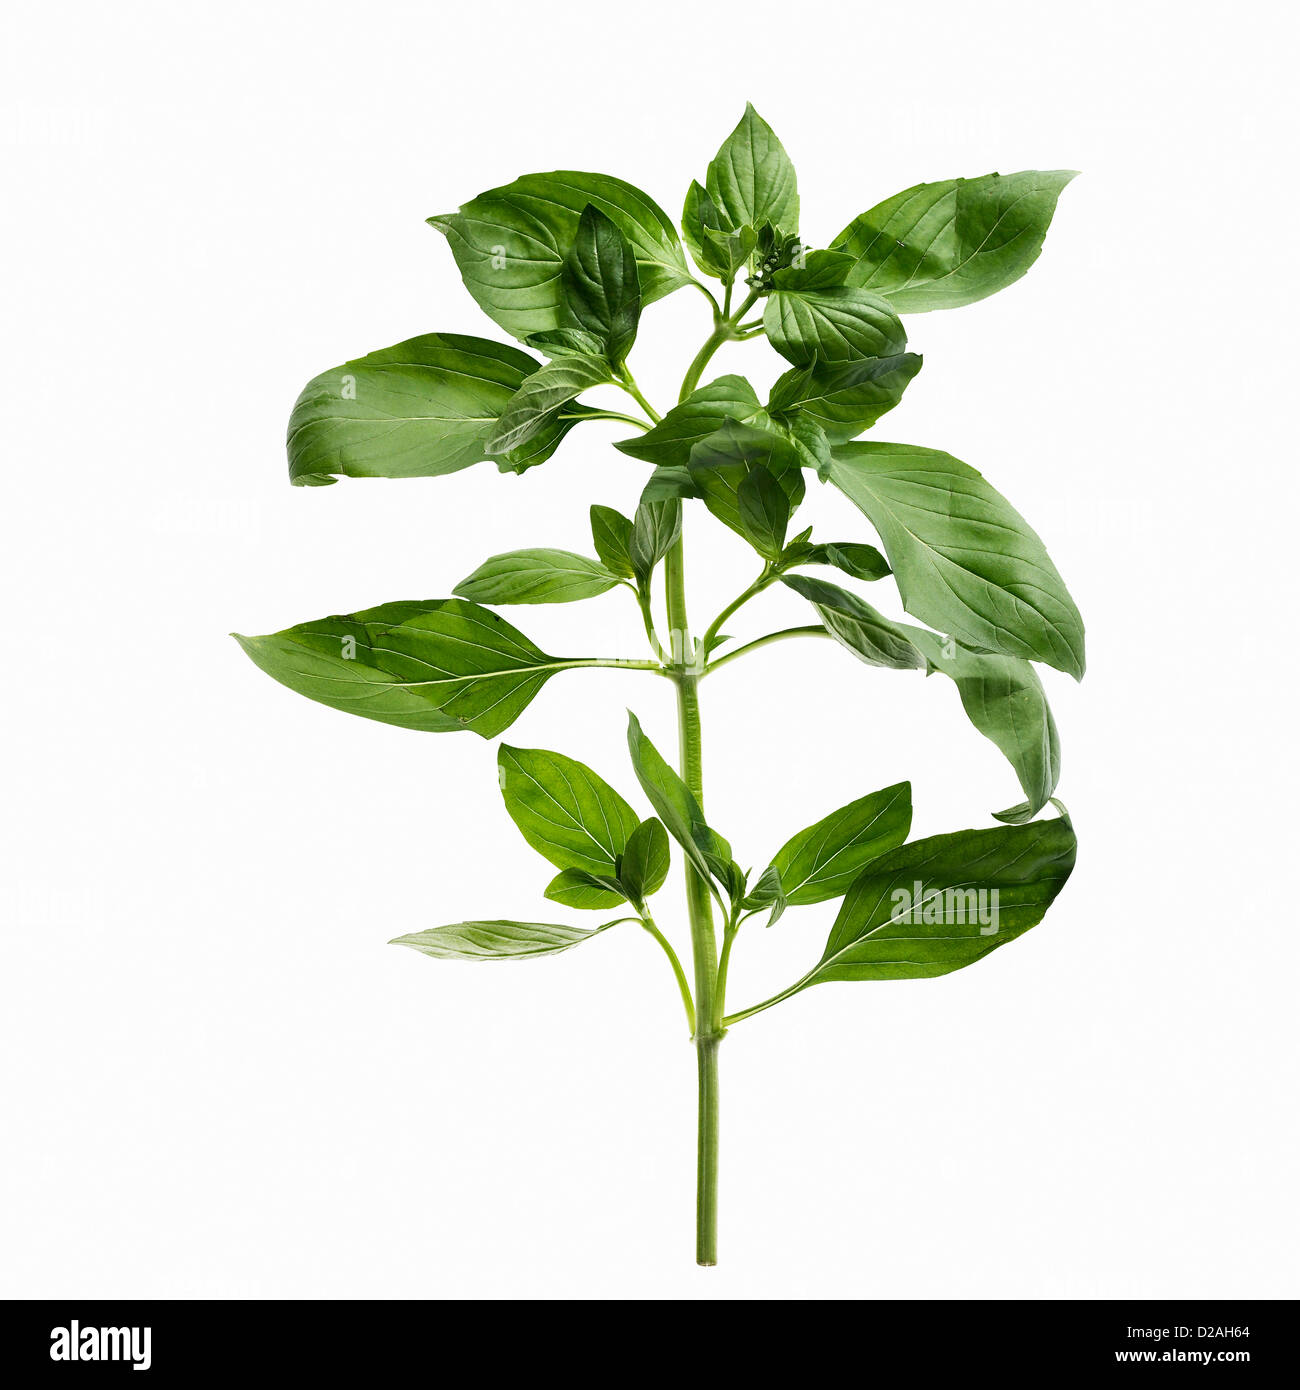 Close up of sprig of herbs - Stock Image